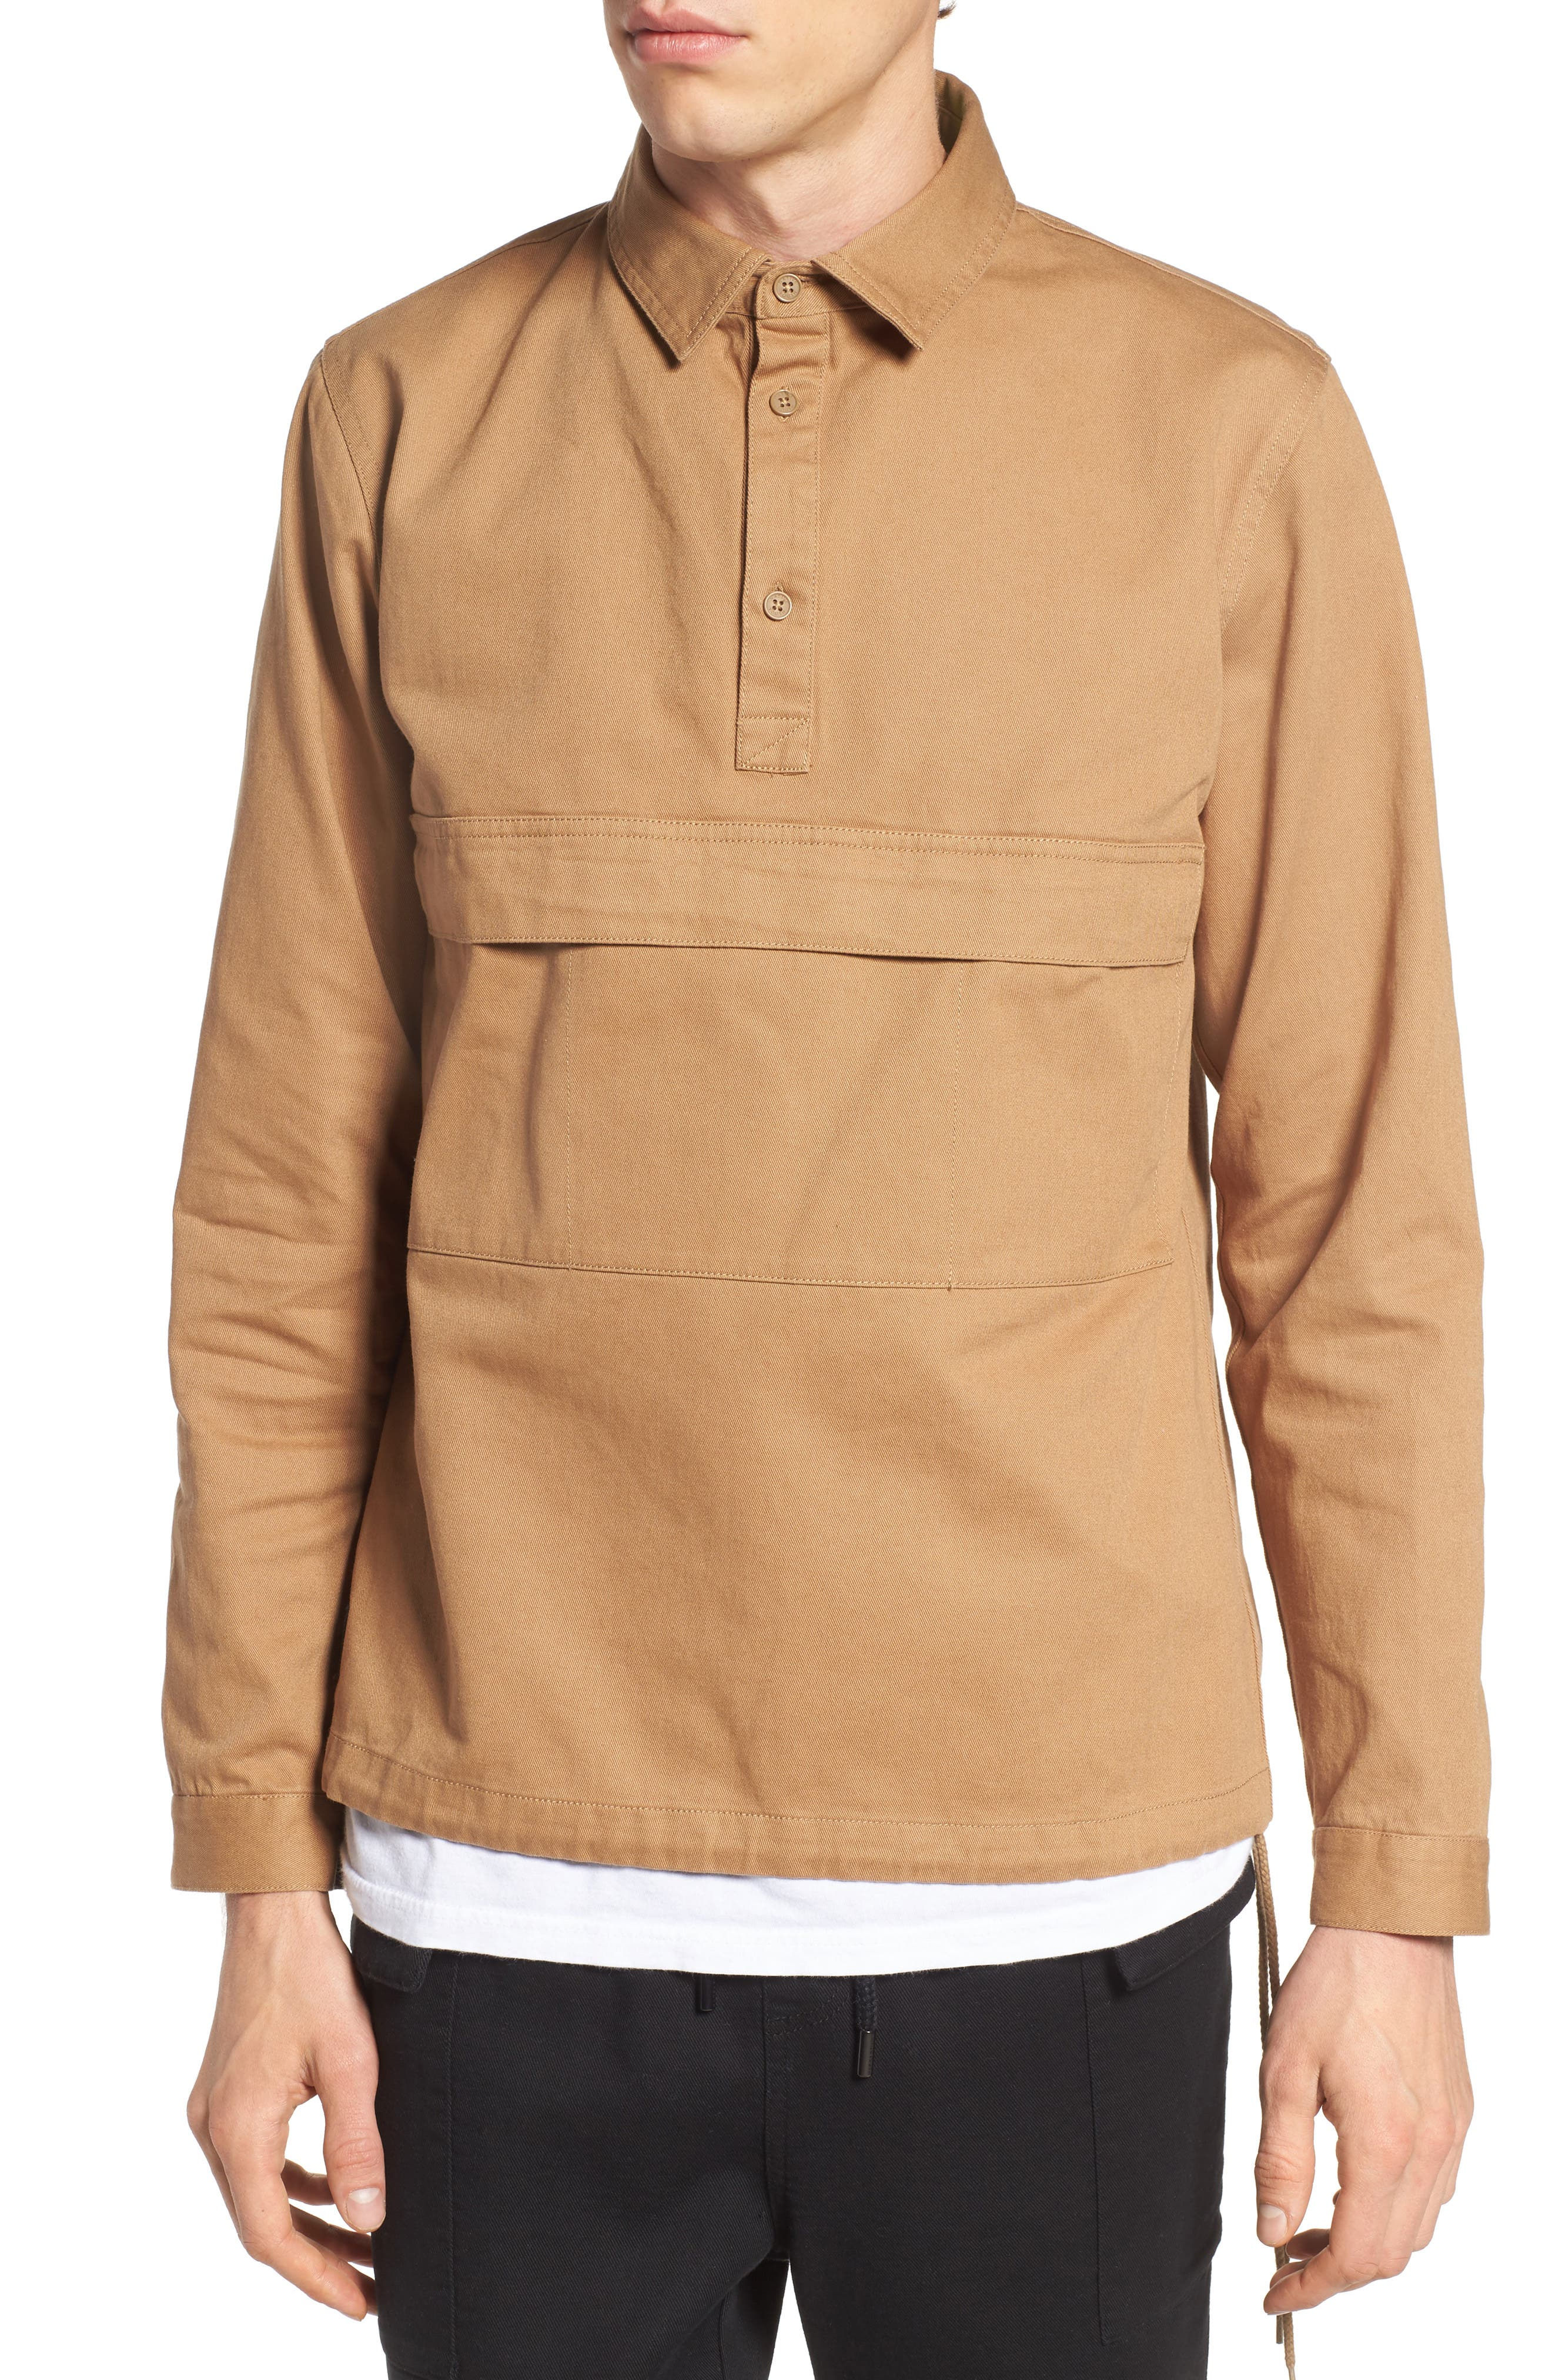 Alternate Image 1 Selected - Native Youth Woodside Twill Shirt